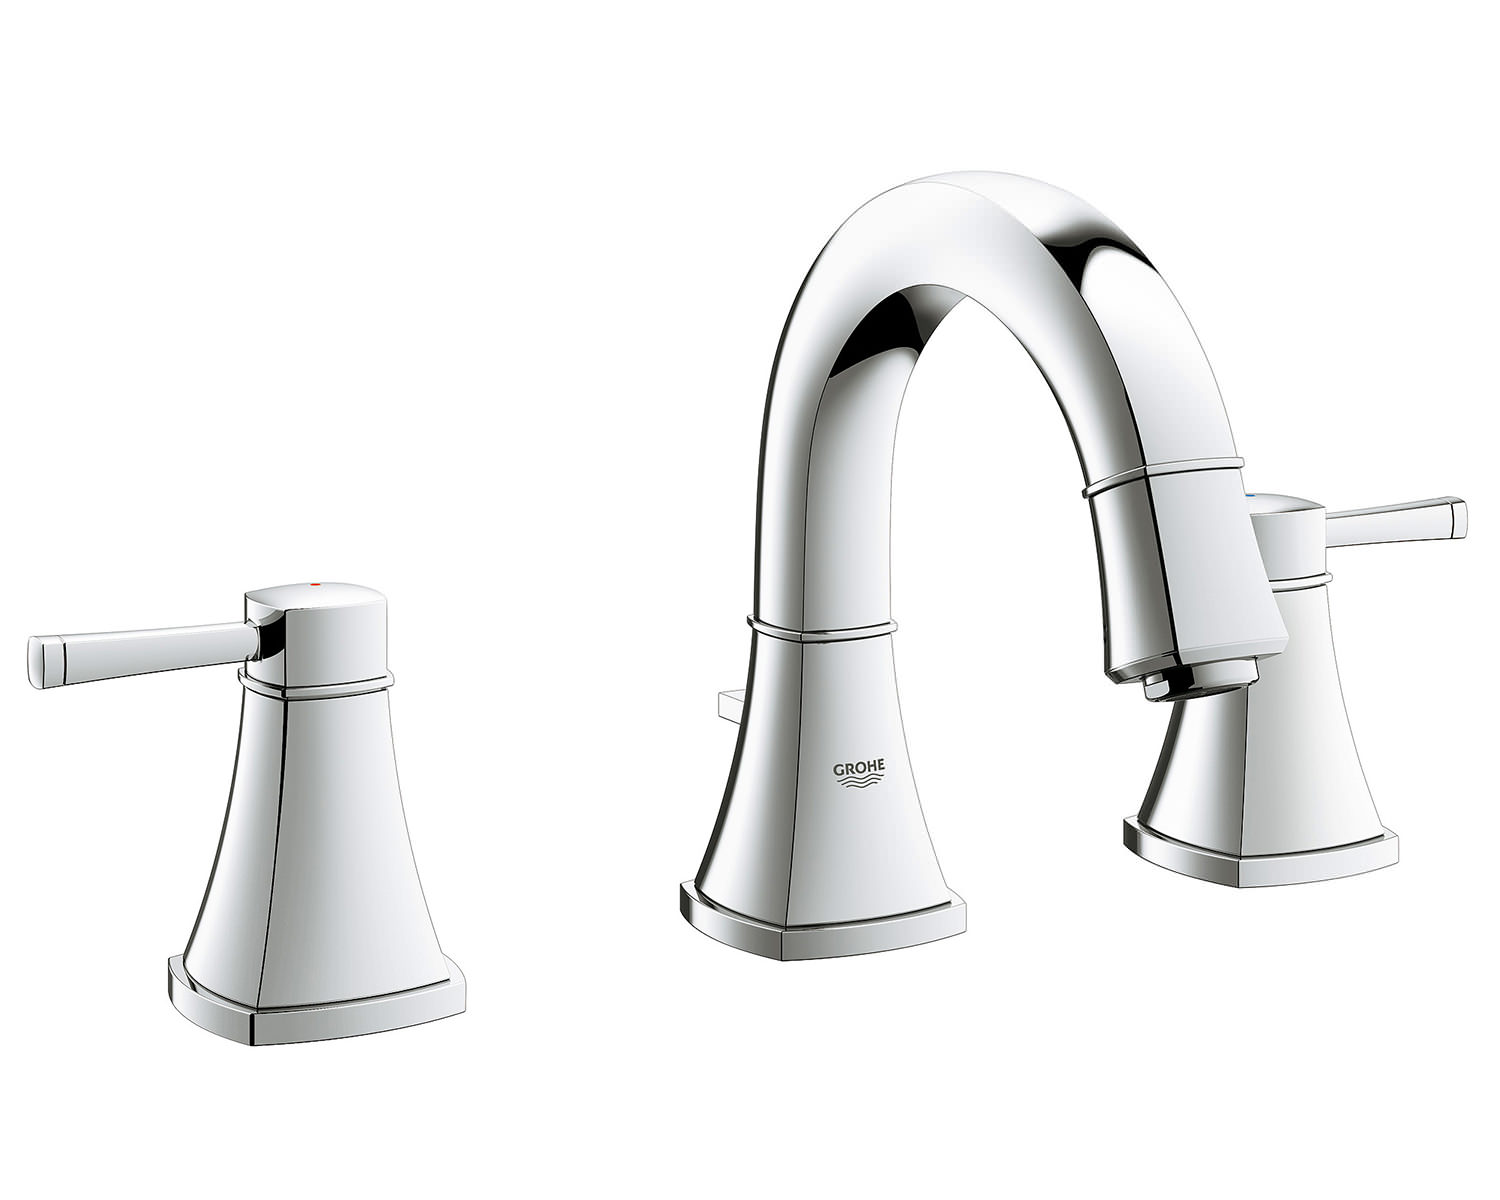 grohe spa grandera chrome 3 hole basin mixer tap 20417000. Black Bedroom Furniture Sets. Home Design Ideas